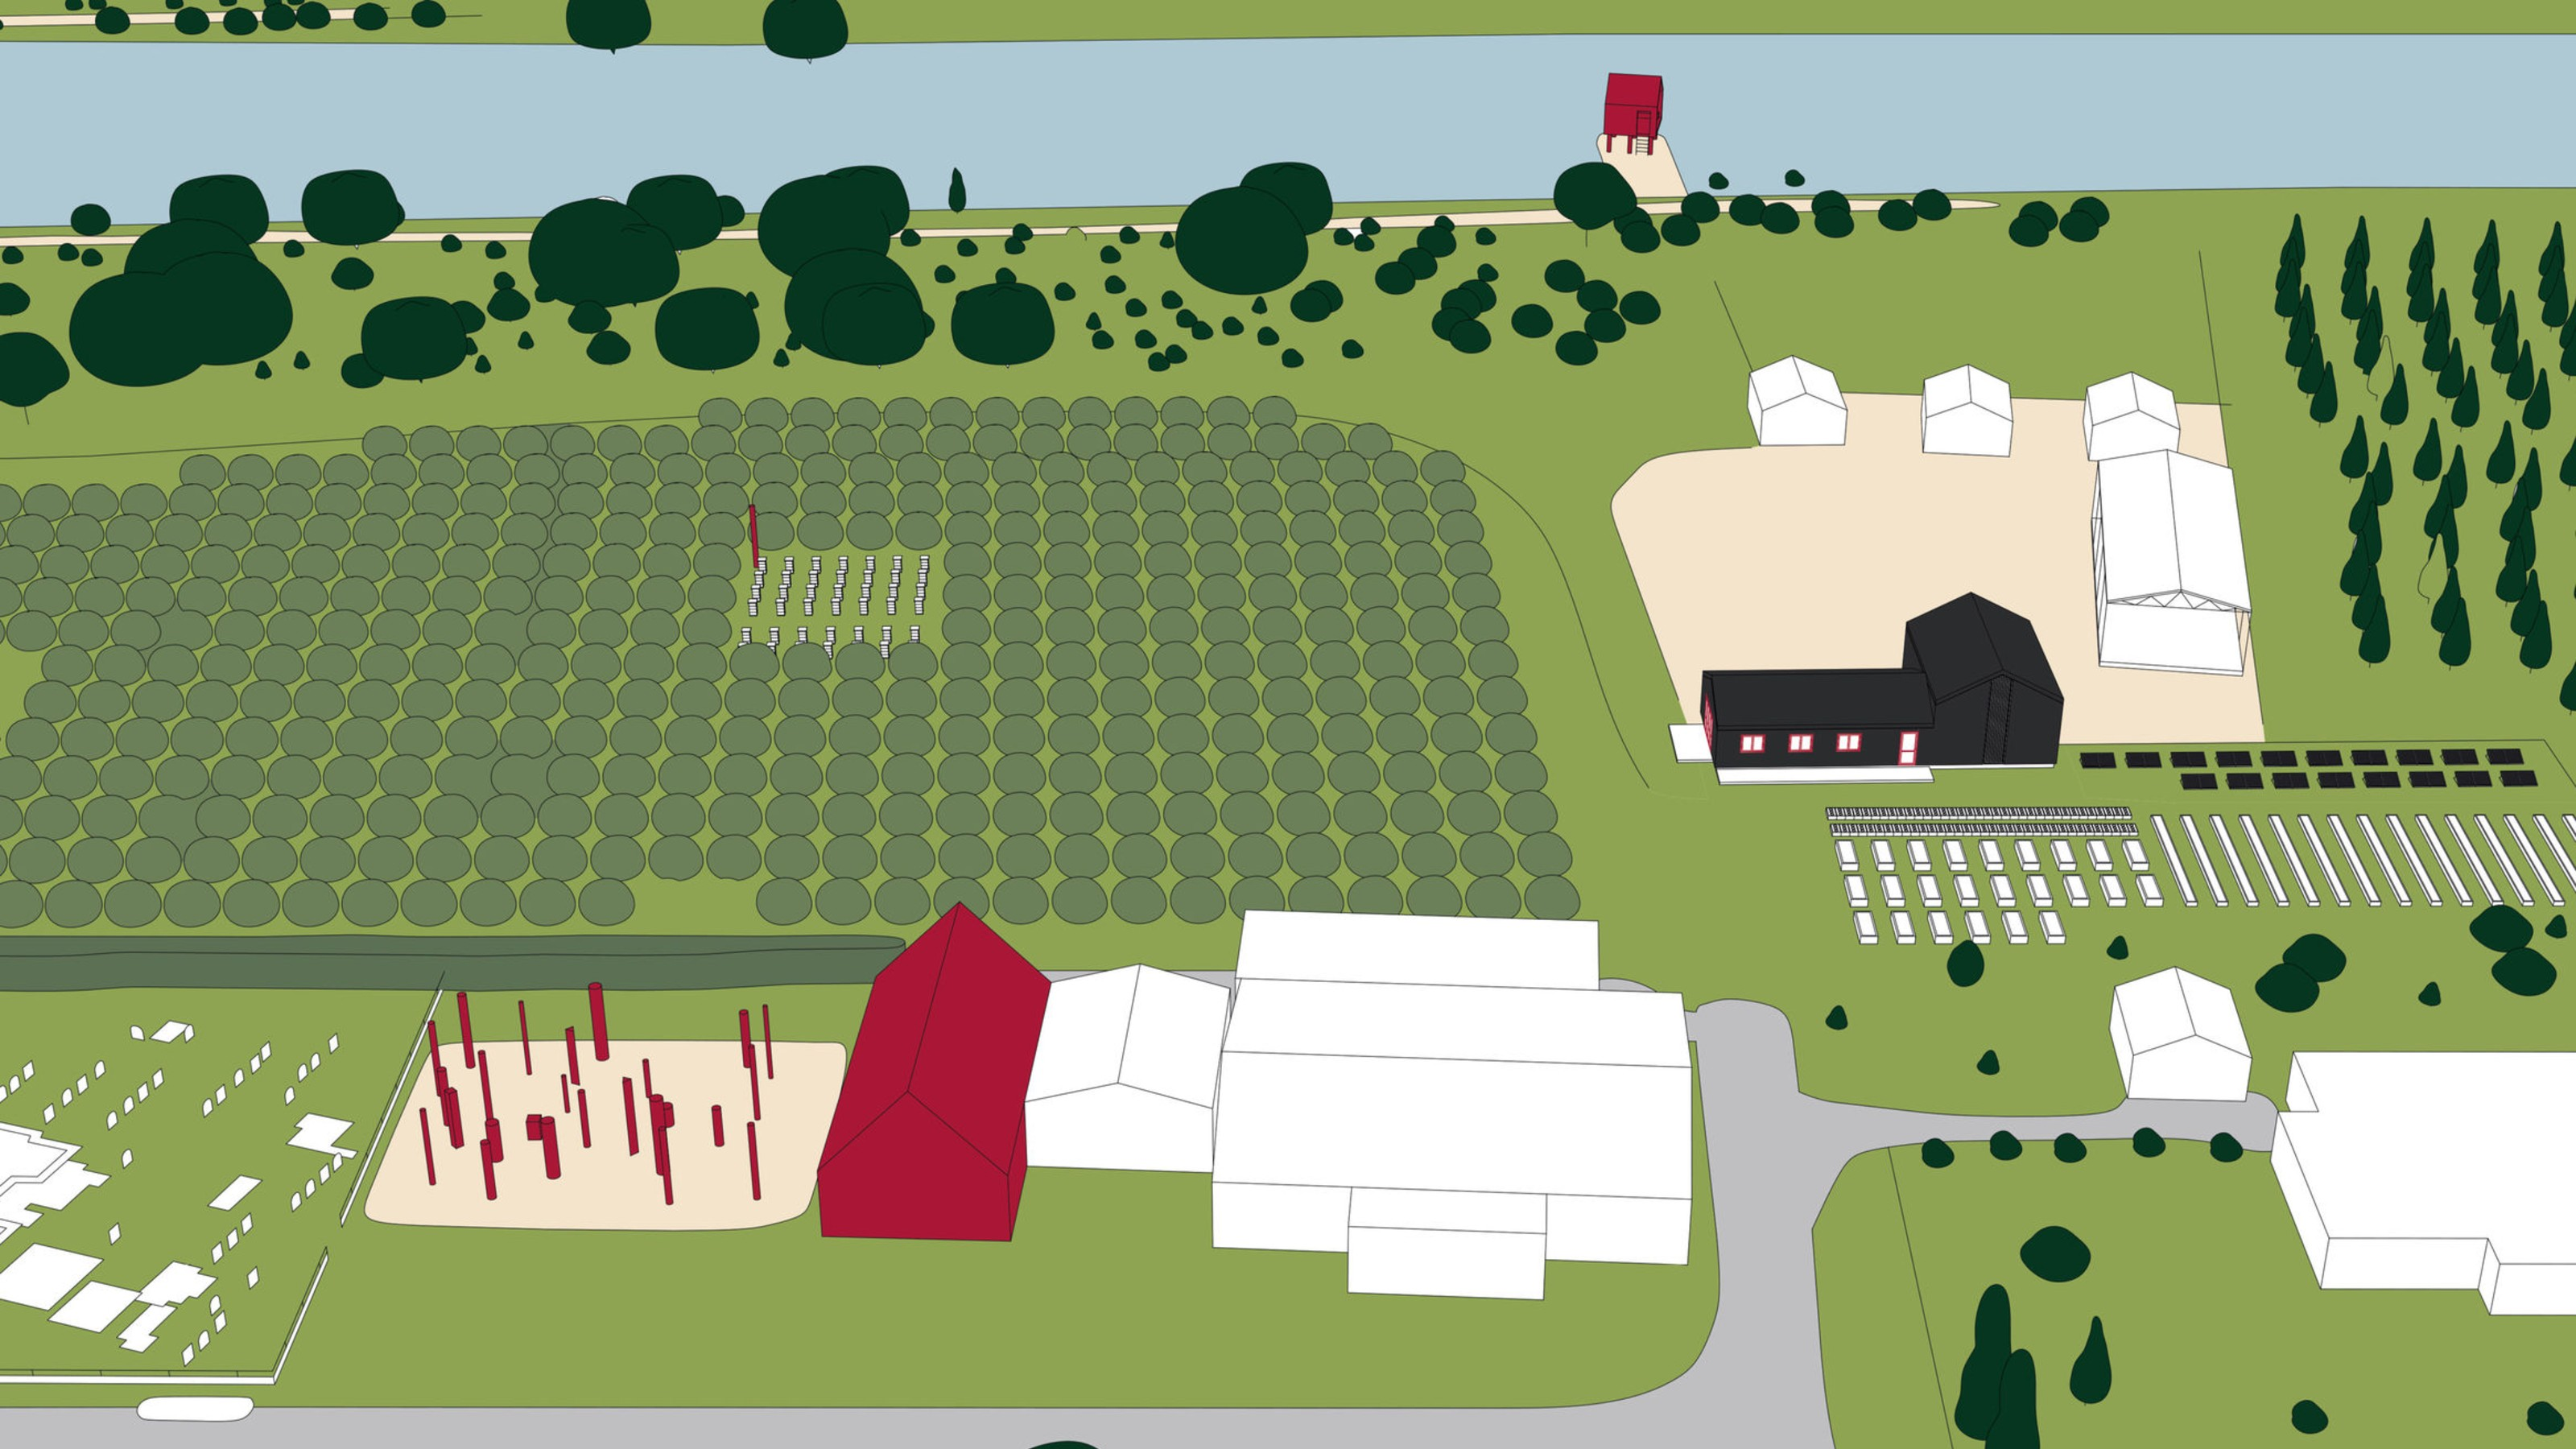 Digital drawing of a marae from above